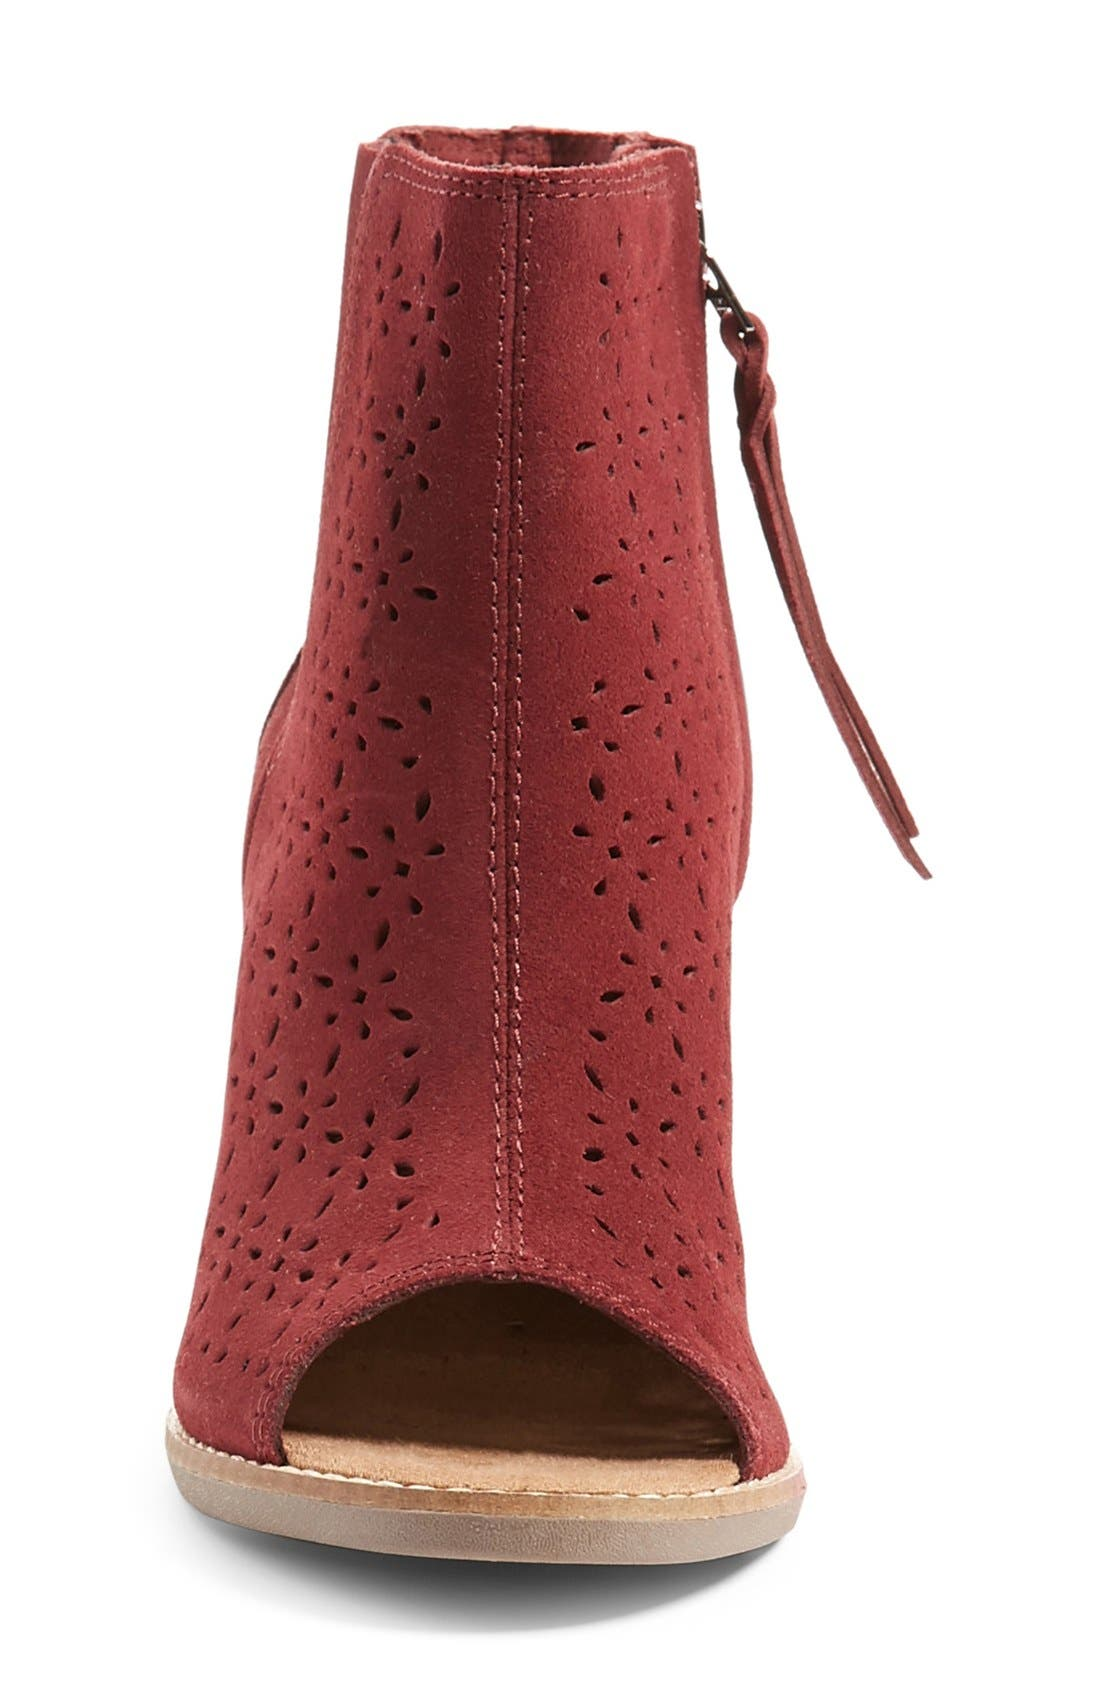 Alternate Image 3  - TOMS 'Majorca' Peep Toe Bootie (Women)